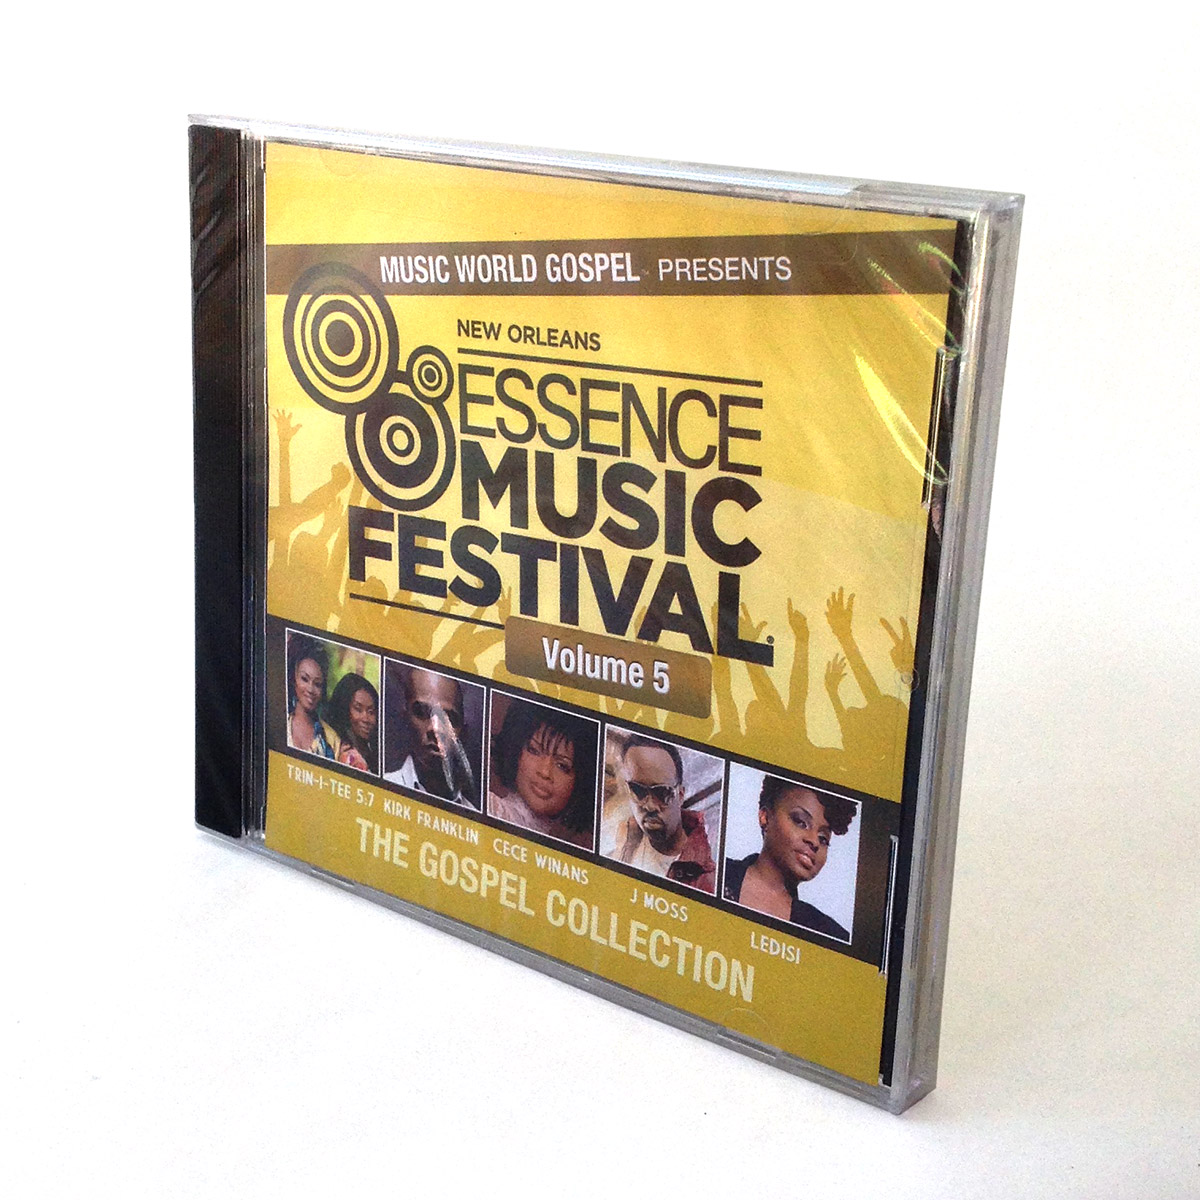 Essence Music Festival - Best CD / Compact Disc Replication Company